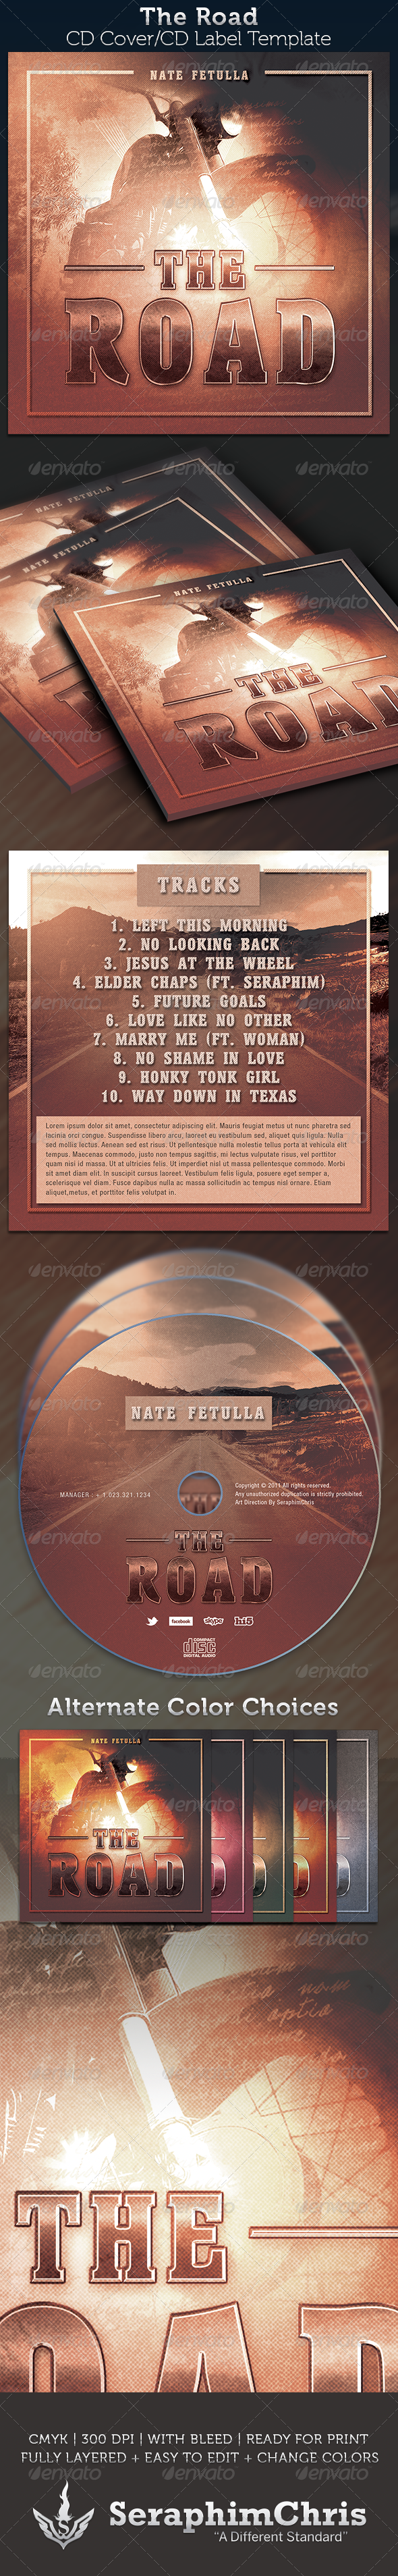 The Road: CD Cover Artwork Template - CD & DVD Artwork Print Templates